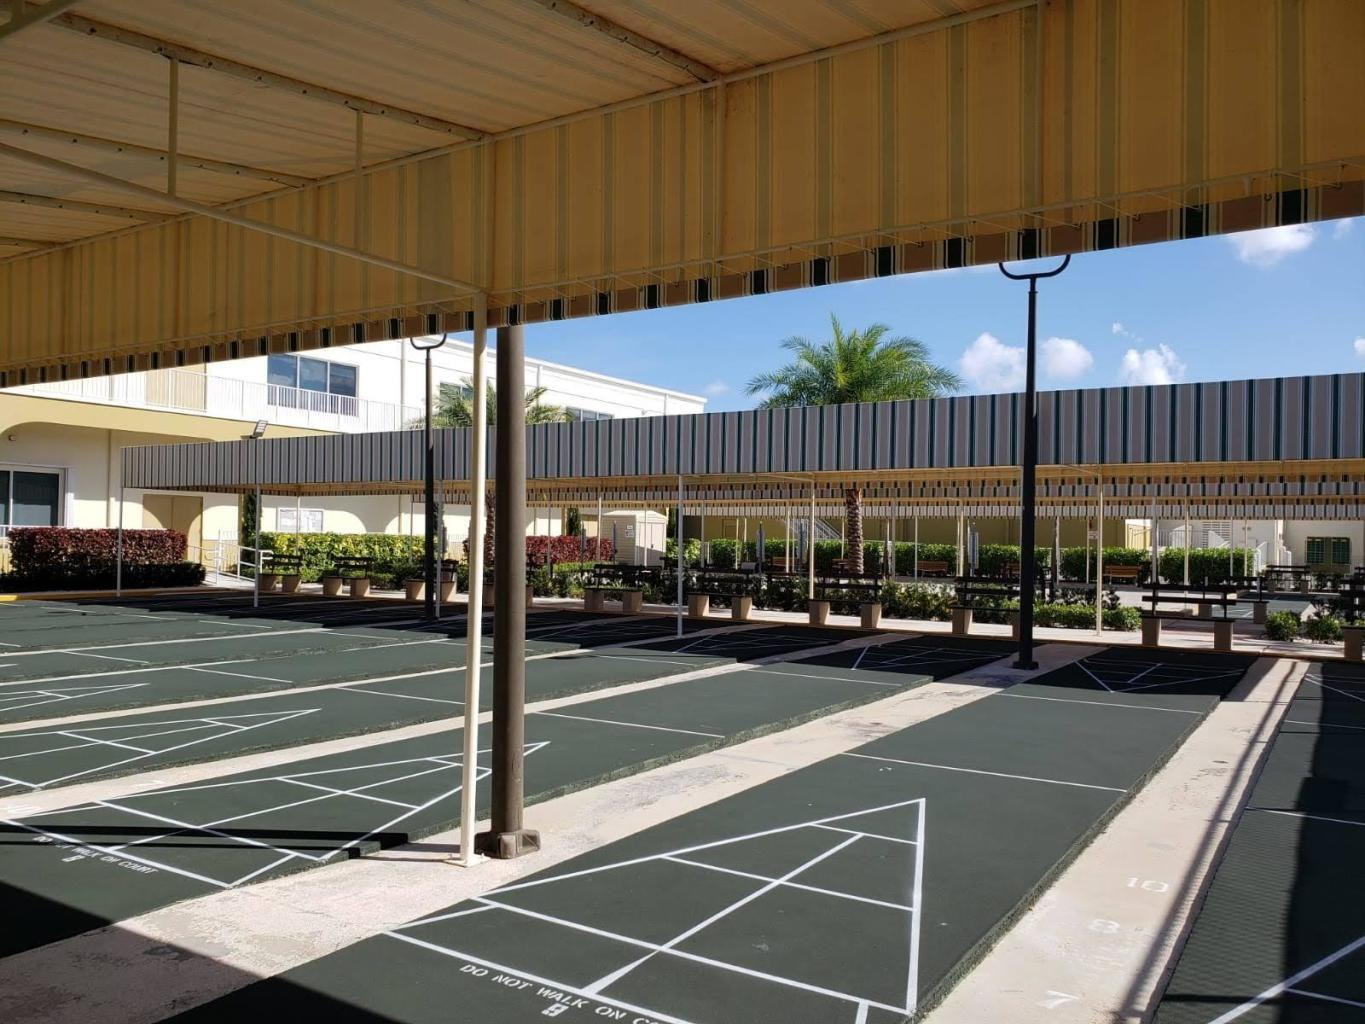 203 Sussex K, West Palm Beach, Florida 33417, 1 Bedroom Bedrooms, ,1 BathroomBathrooms,Residential,for Rent,Century Village,Sussex K,RX-10643467, , , ,for Rent